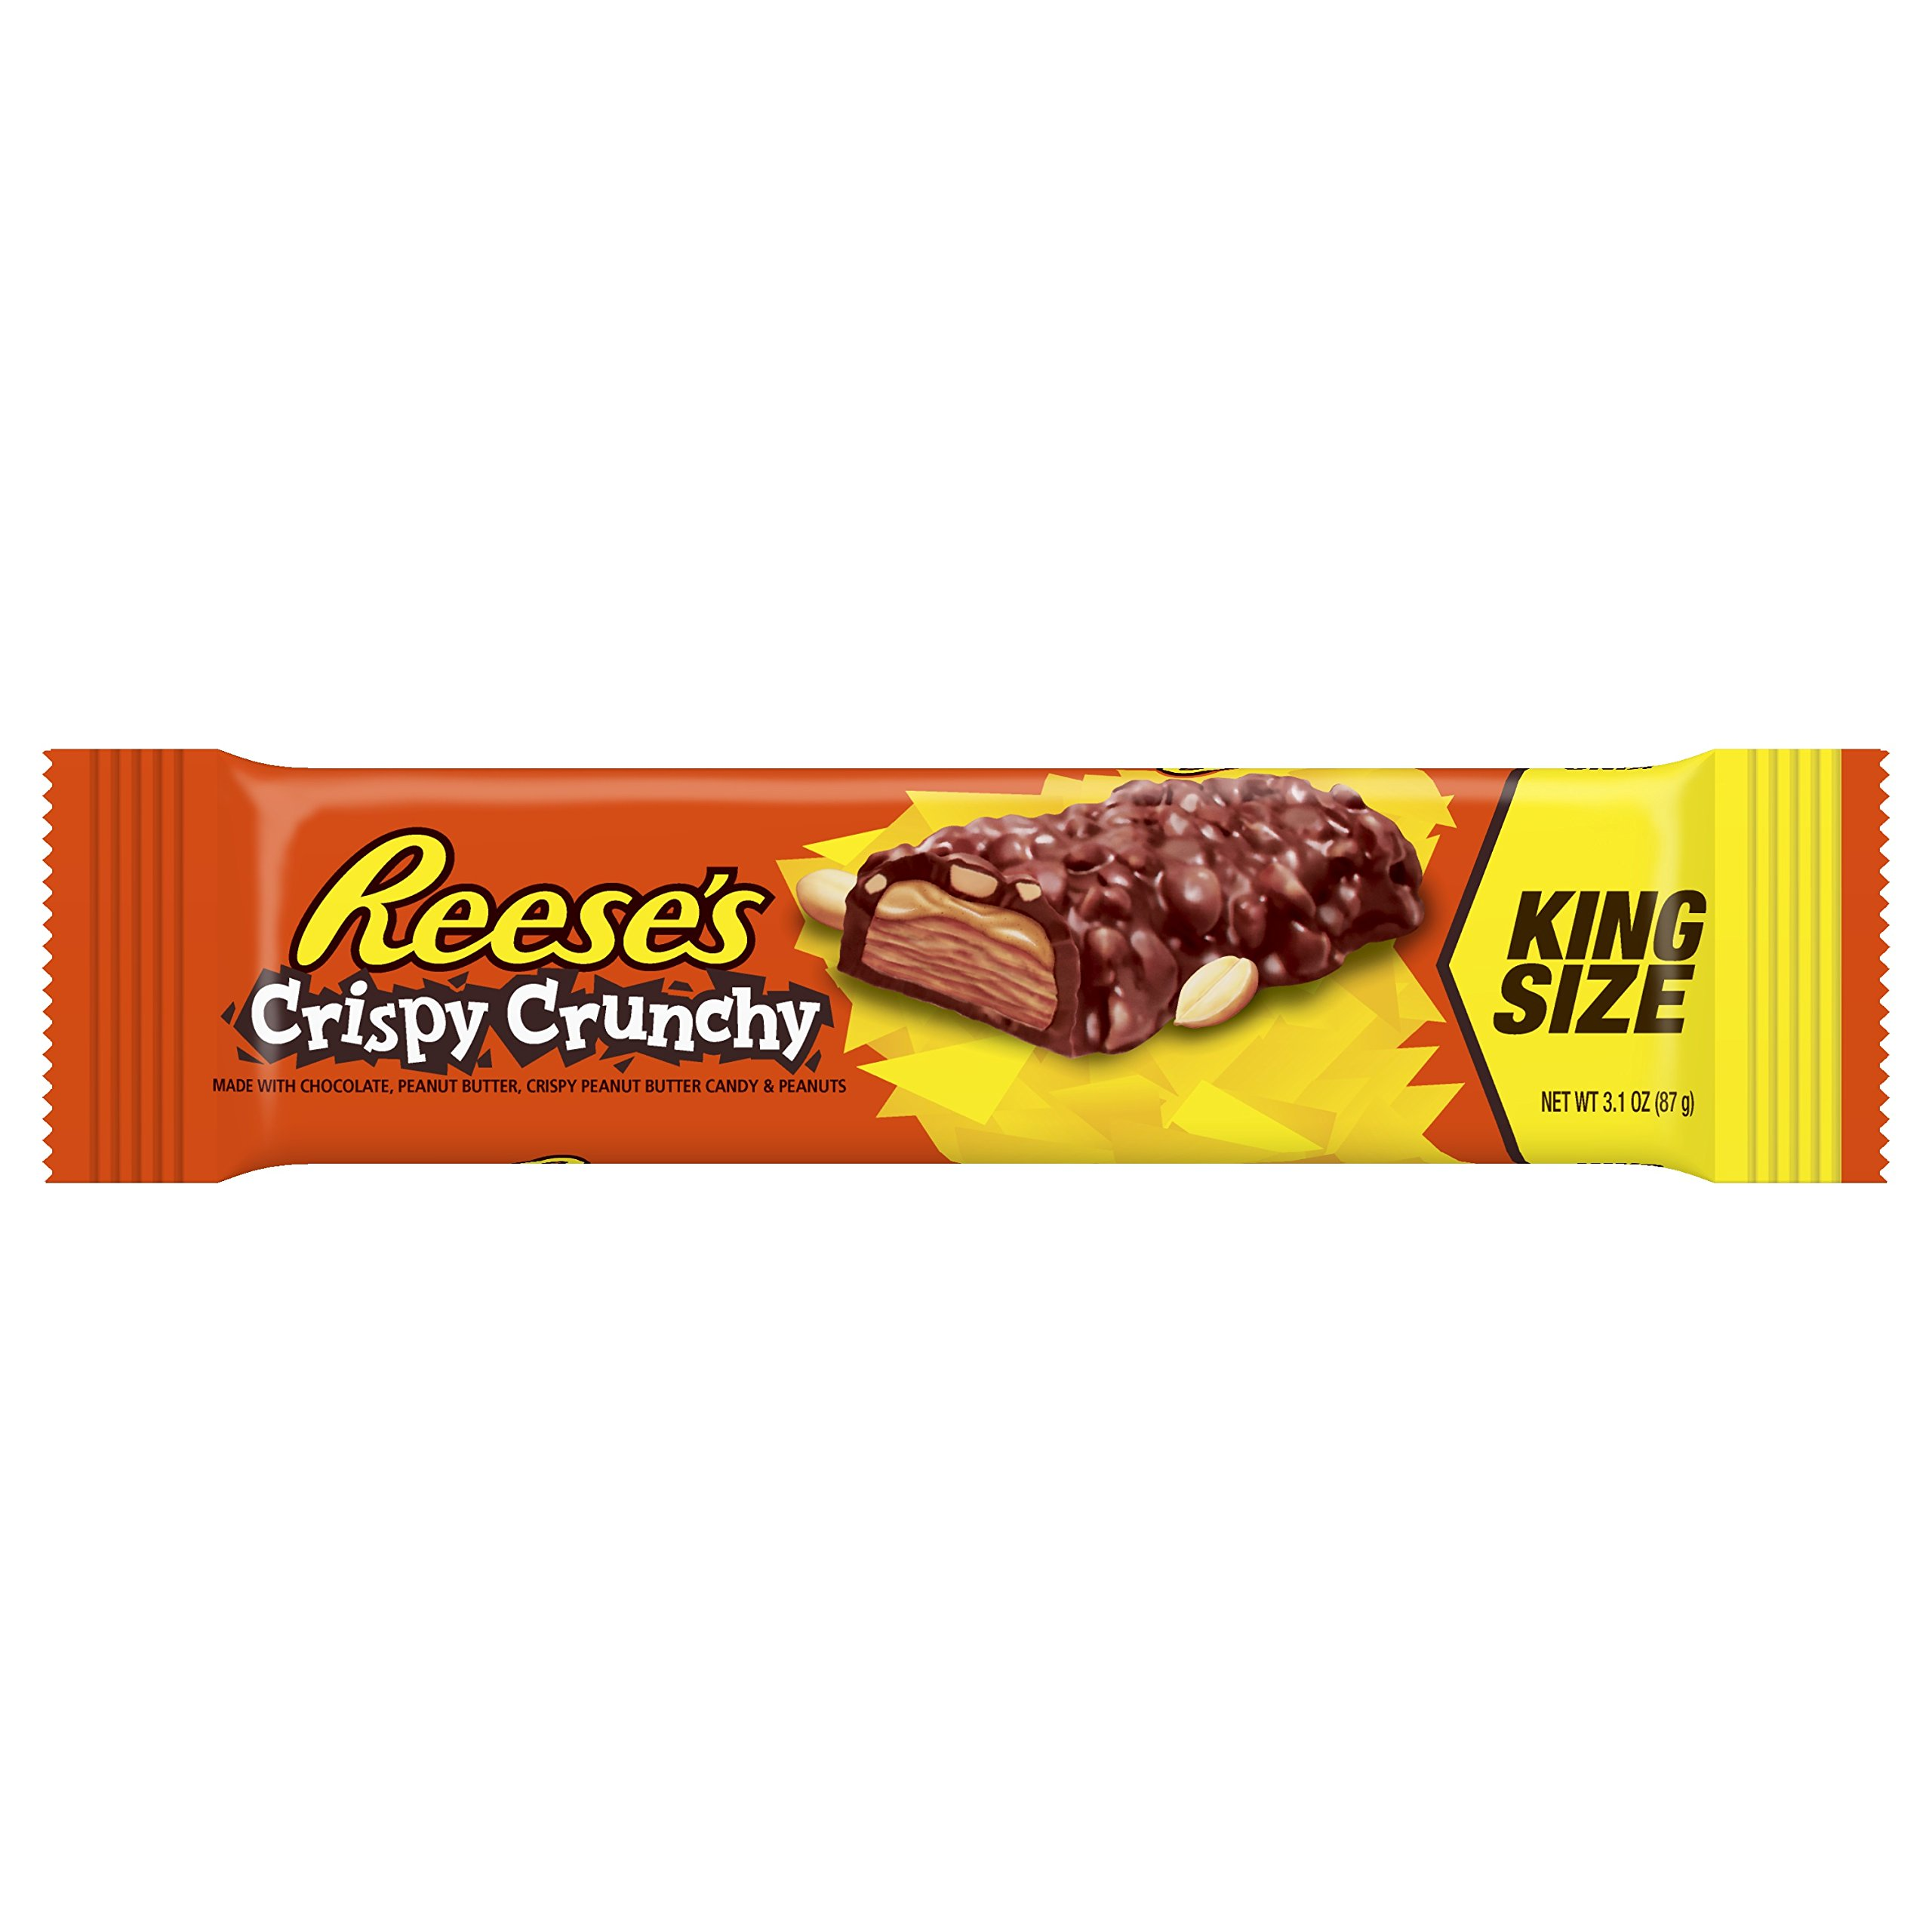 CDM product REESE'S Peanut Butter Candy Bar Crispy Crunchy Bars, King Size (Pack of 18) big image